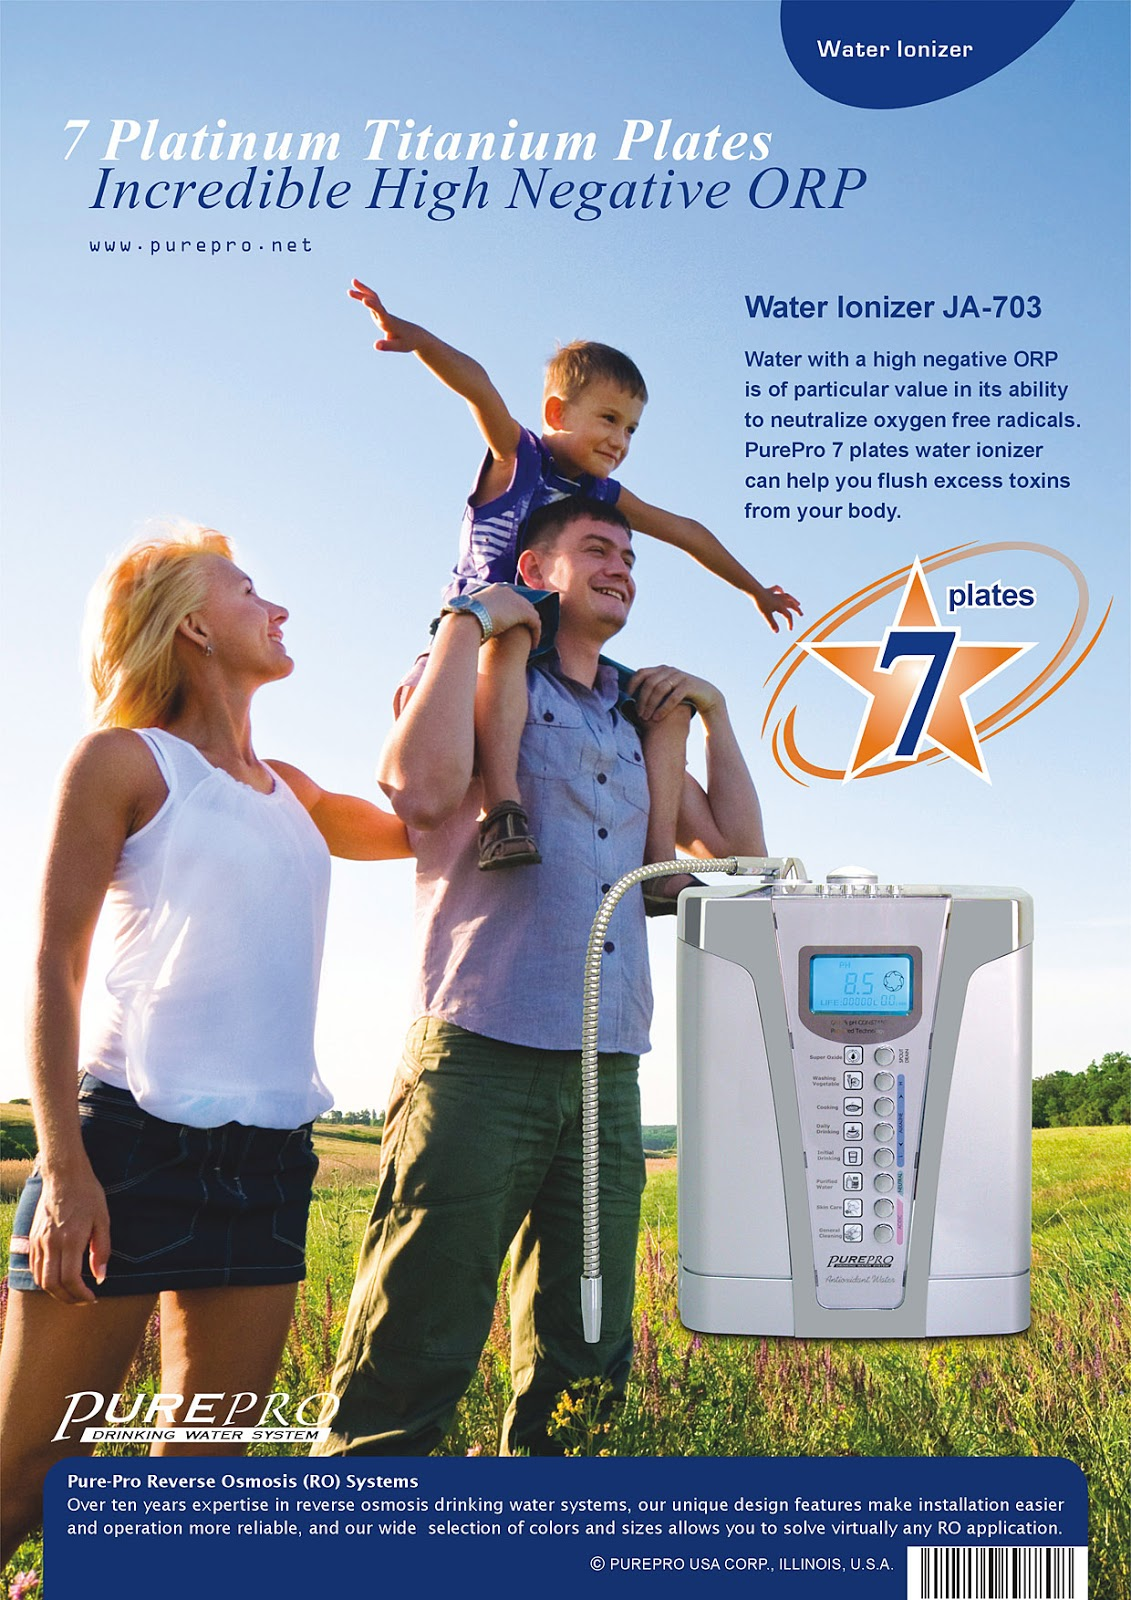 Best Water Ionizer That You Can Use - PurePro USA Water Ionizer JA-703